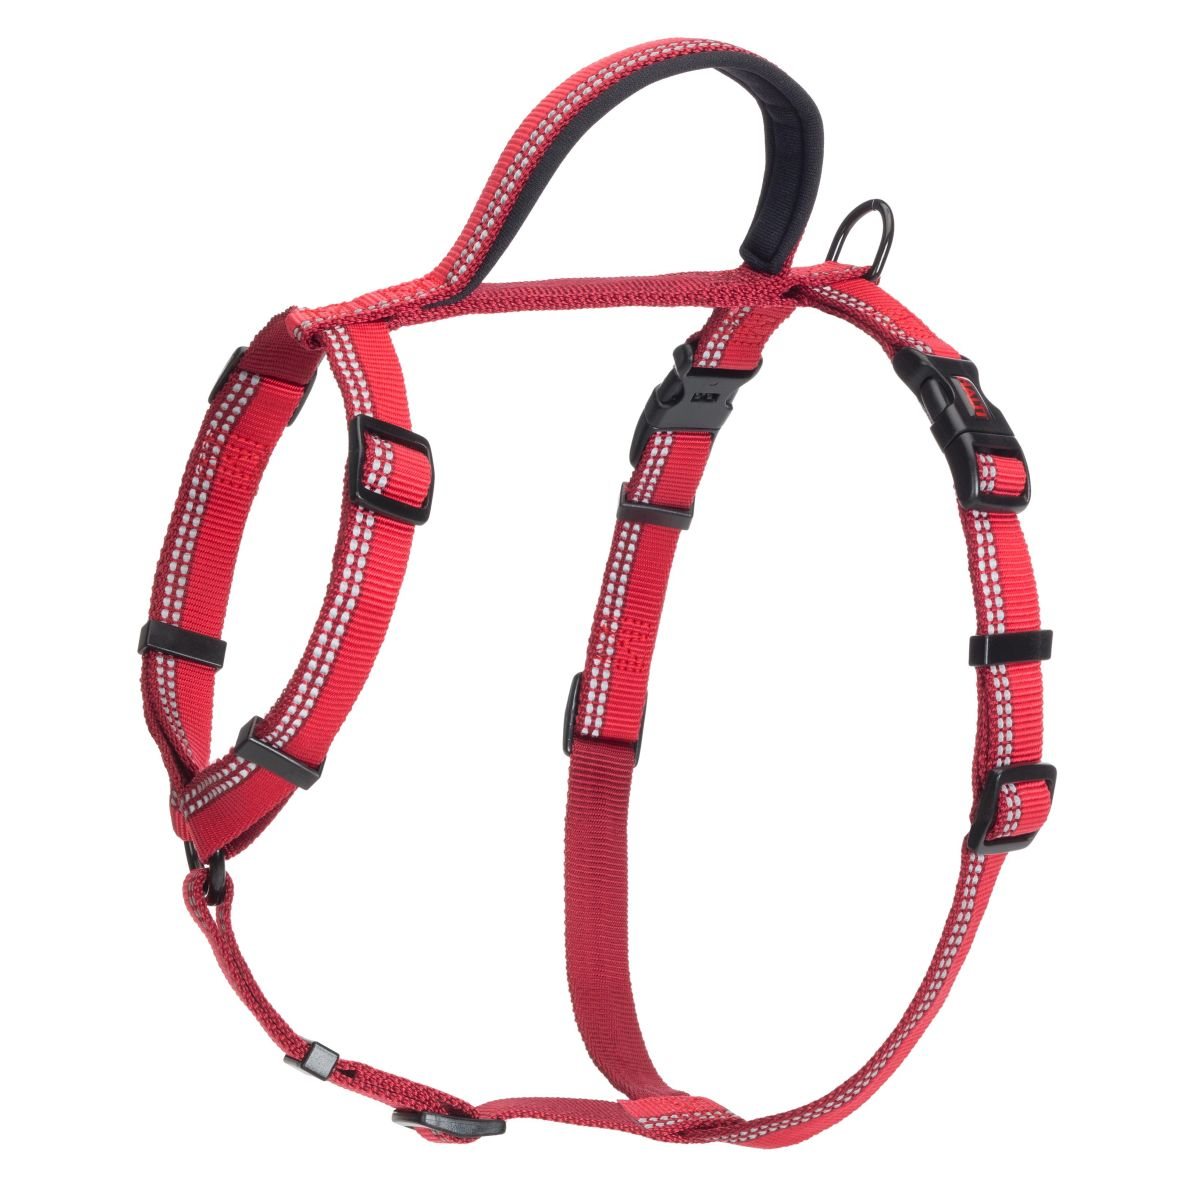 HA WALKING HARNESS RED LARGE 00000